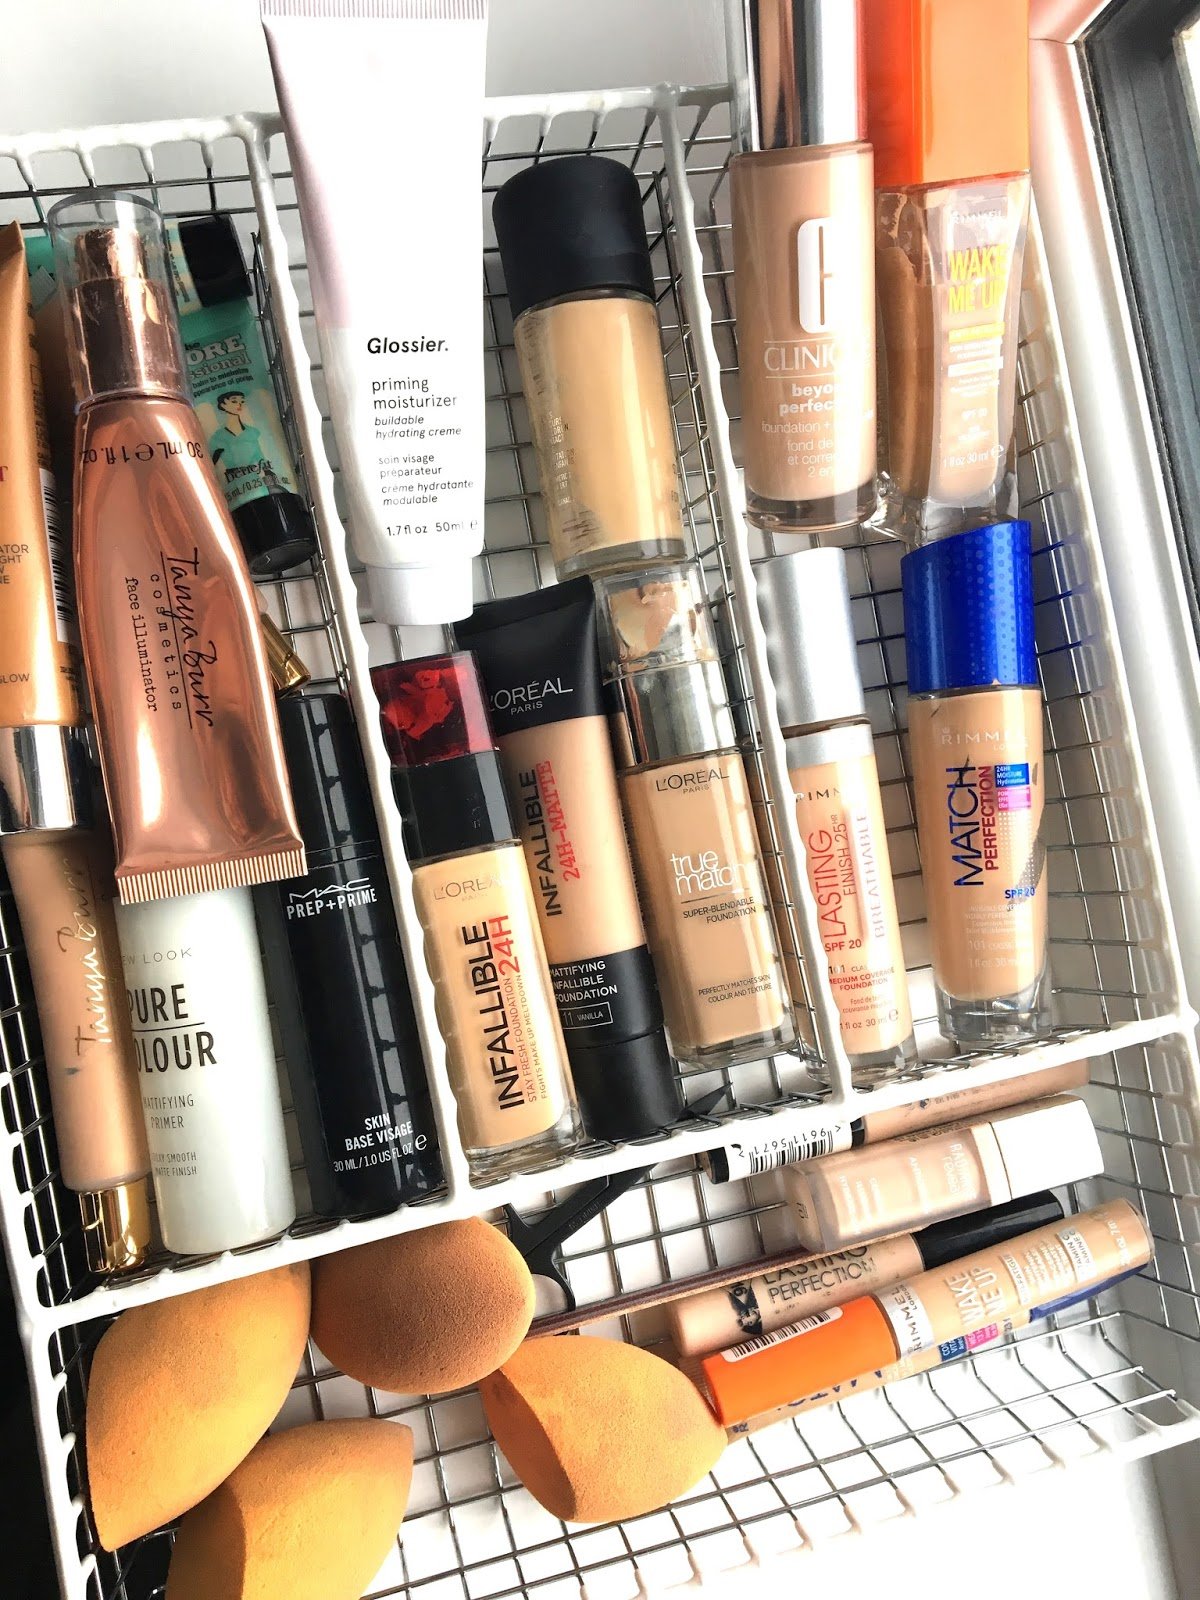 5 Questions I Ask myself When De-cluttering Makeup